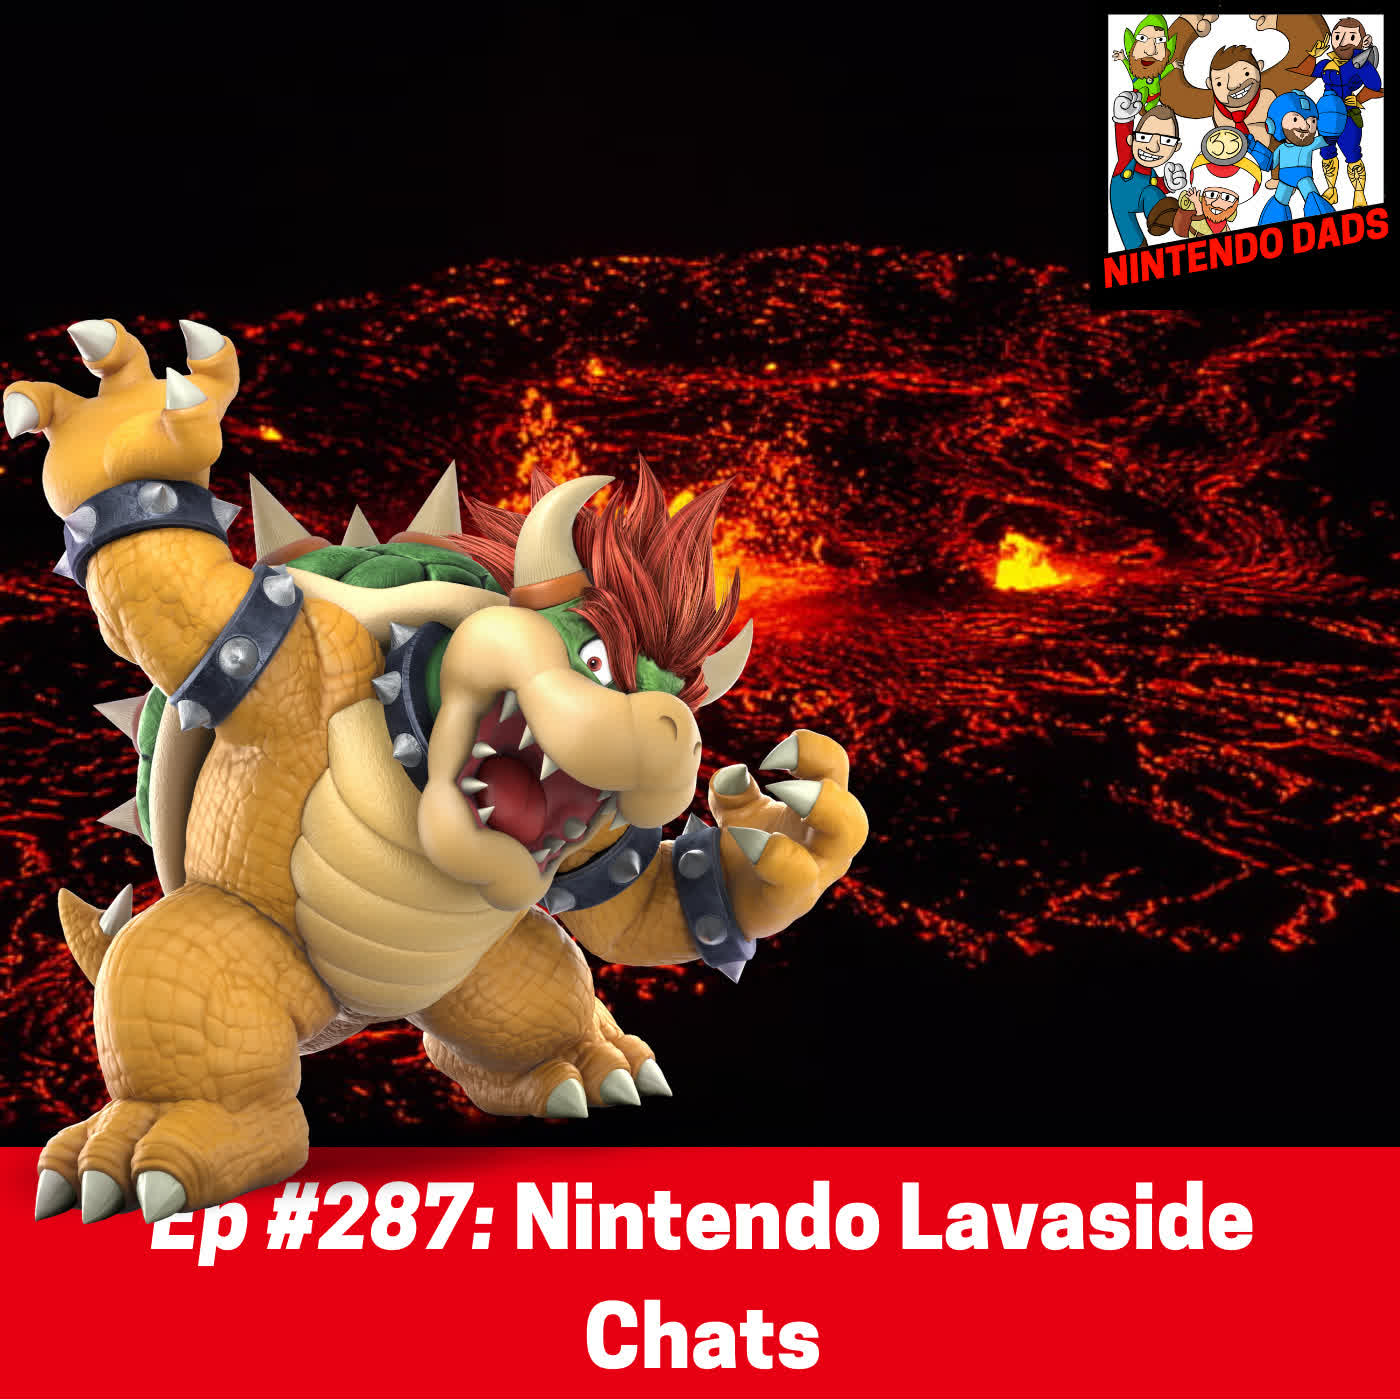 #287: Nintendo Lavaside Chats